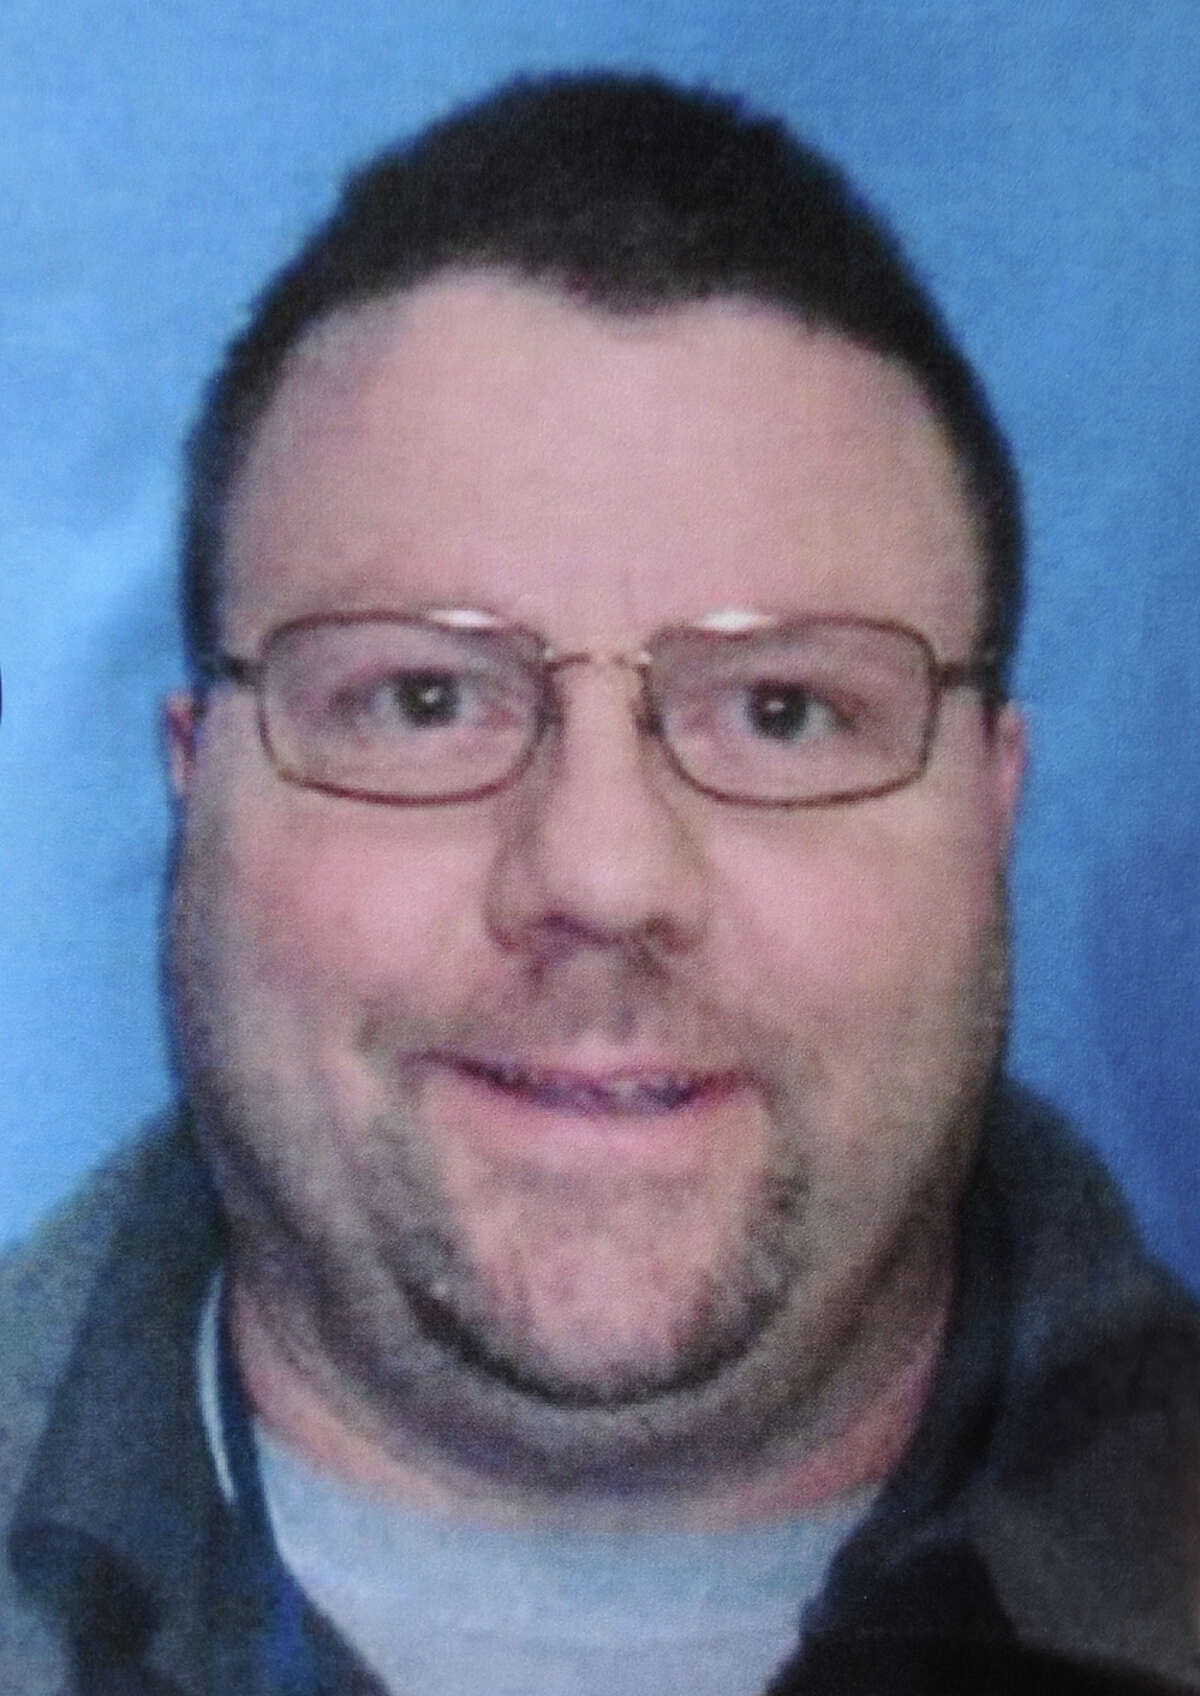 Scott Gellatly is the subject of state police manhunt in the killing of his estranged wife, Lori Gellatly, an shooting of her mother, at 55 Sioux Drive in Oxford, Conn. on Wednesday, May 7, 2014.